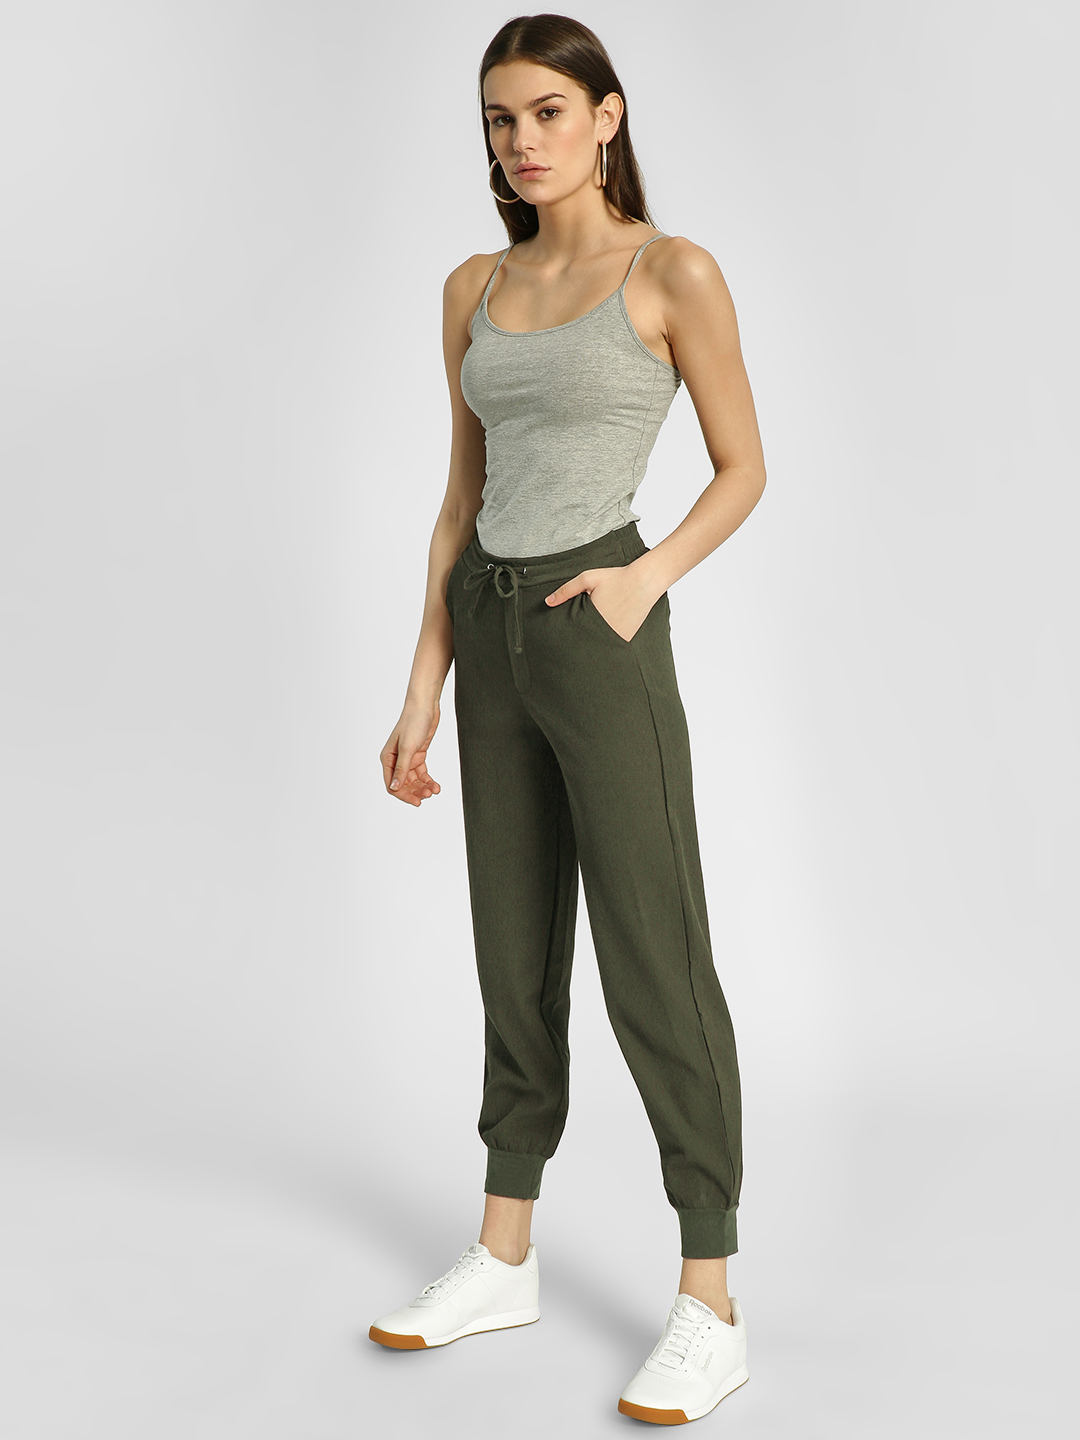 HEY Olive Woven Drawcord Joggers 1